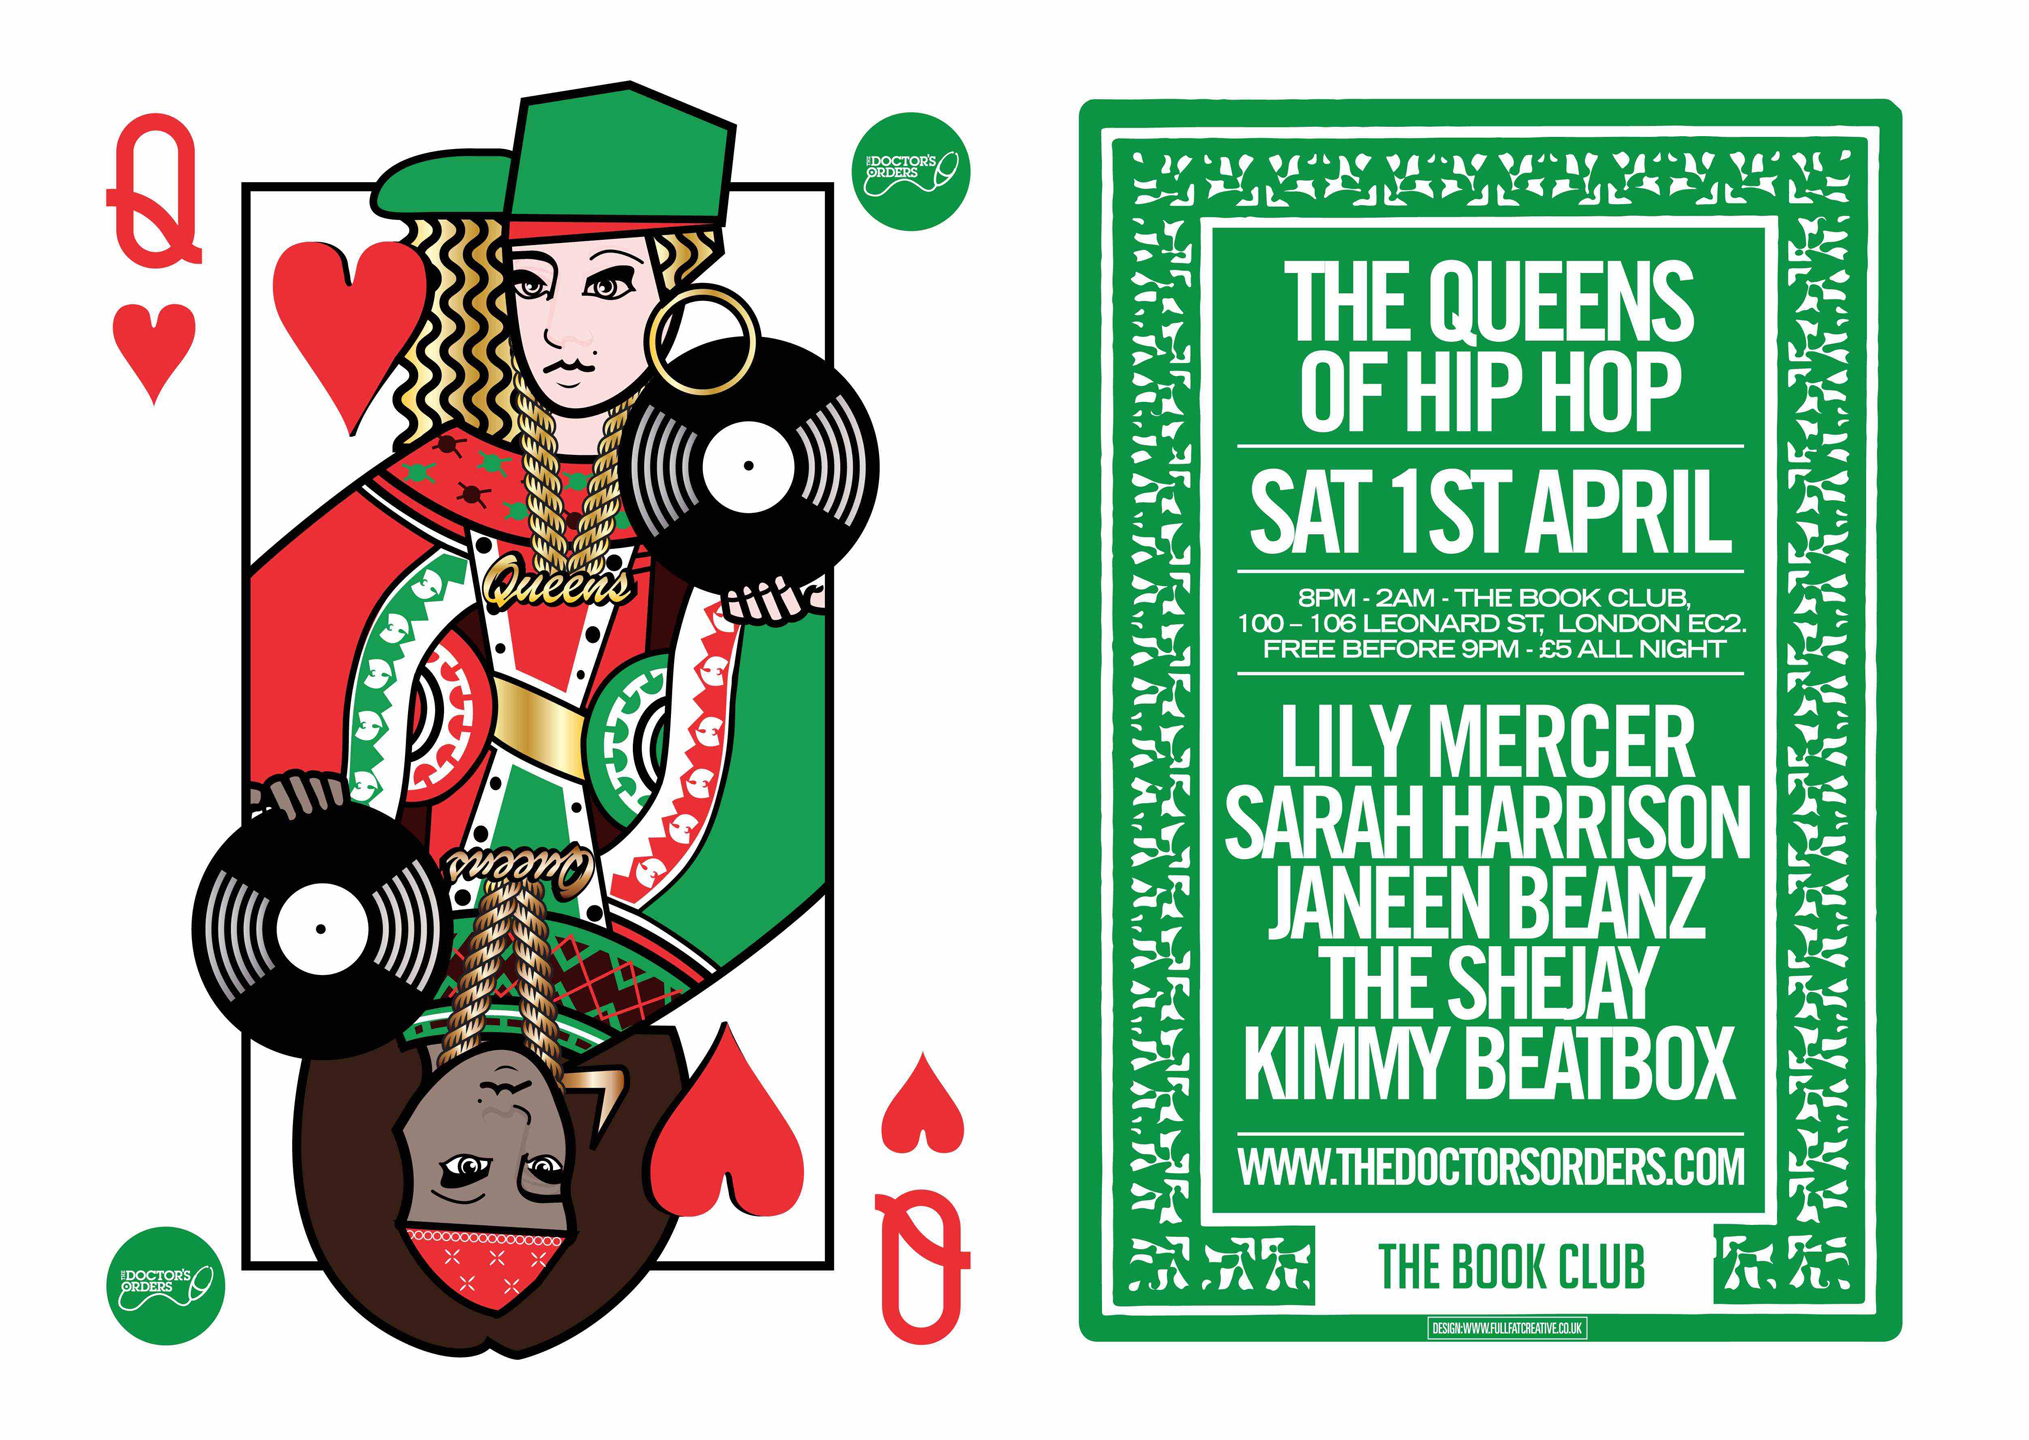 Queens_1stApril17_Online1-4